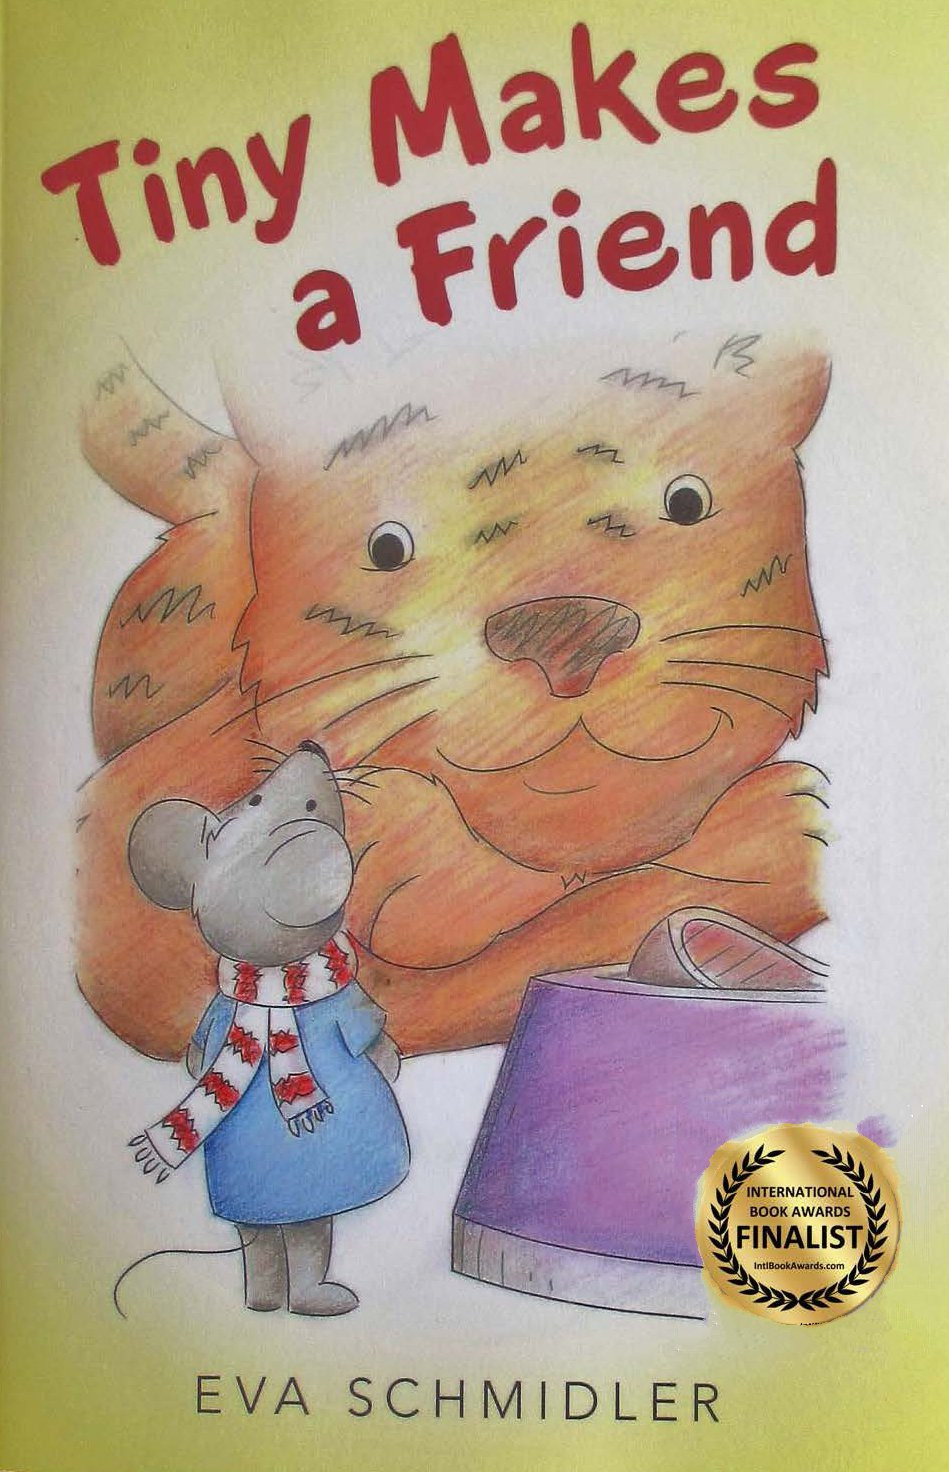 I'm proud to announce that Tiny Makes a Friend was selected as a finalist in the 2017 International Book Awards